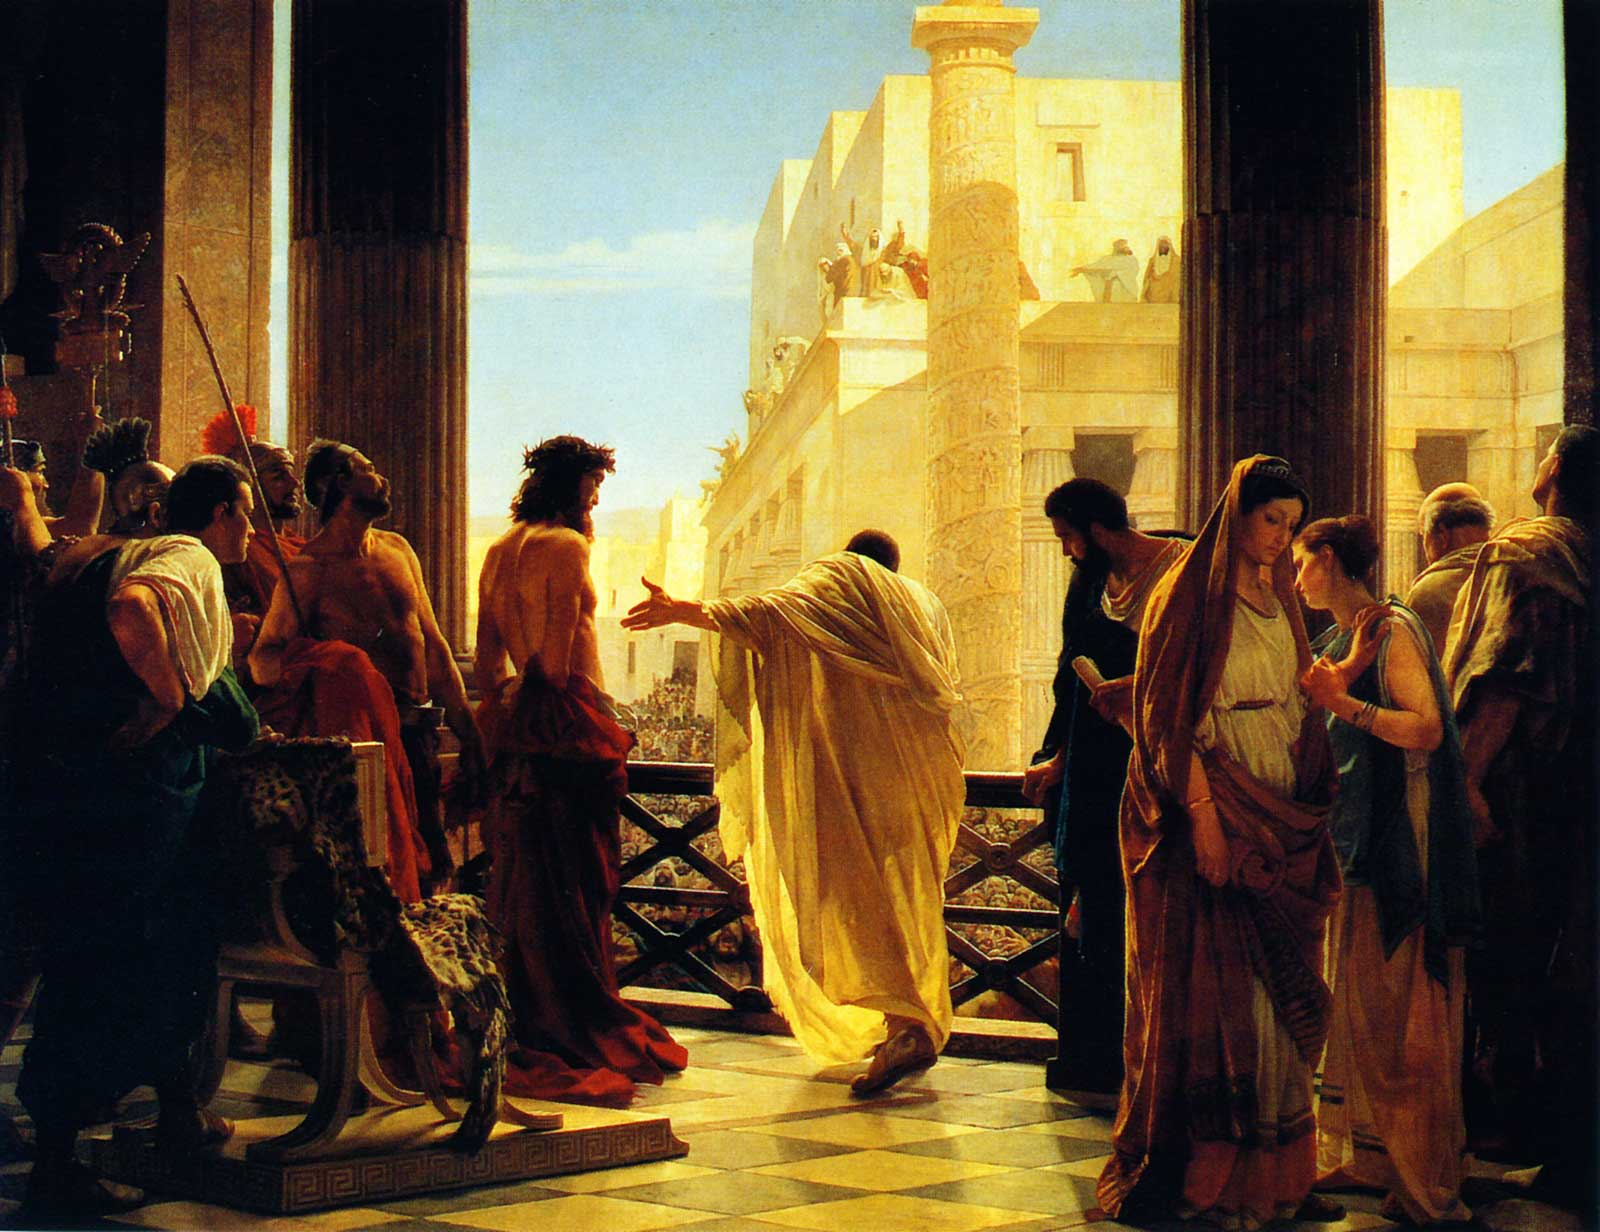 """trial and crucifixion of christ history essay This lesson is part of mel lawrenz' """"how to study the bible"""" series if you know someone or a group who would like to follow along on this journey through scripture, they can get more info."""